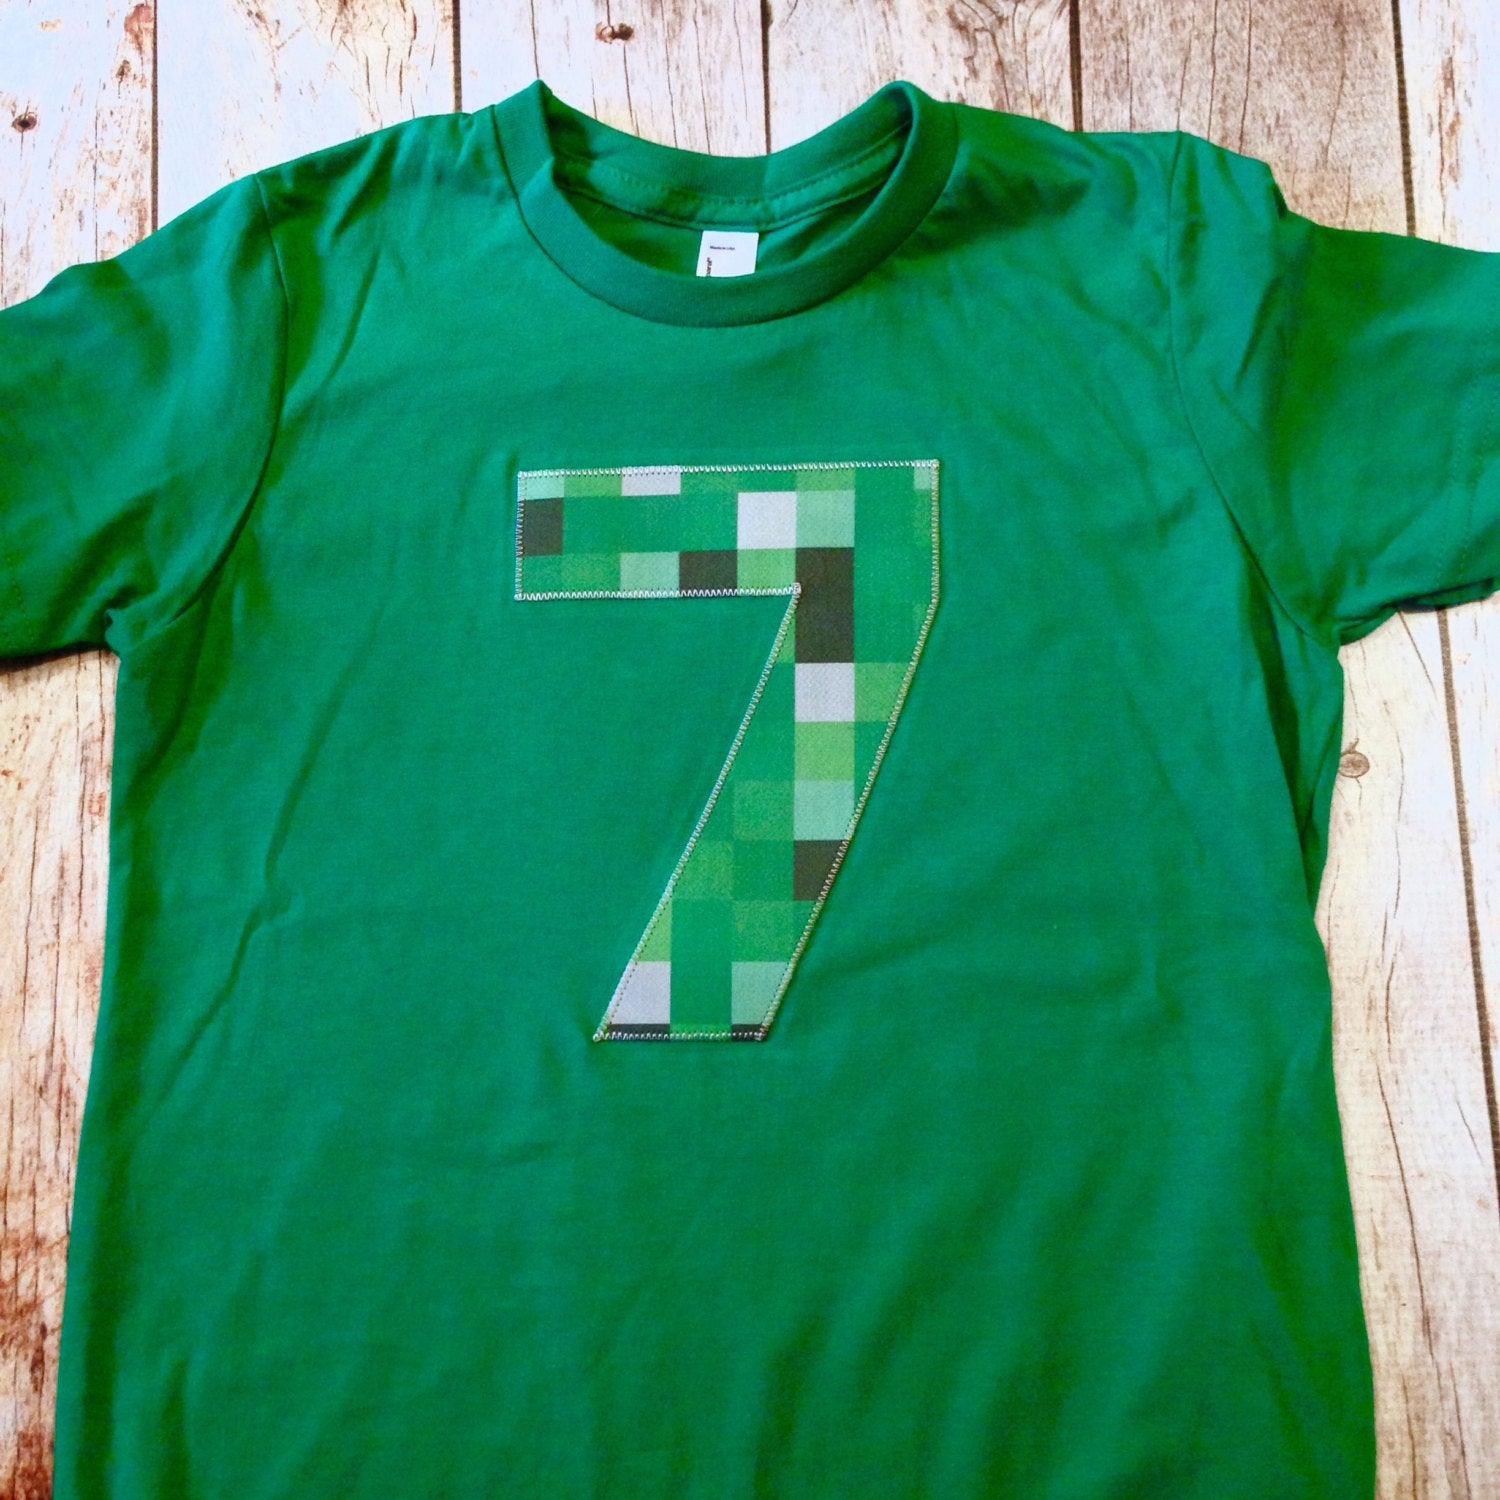 8th Birthday ANY NUMBER green 8 pixel video game Fabric Birthday Shirt older kids 7th 8th 9th birthday boy tnt water land hacks 6 7 8 9